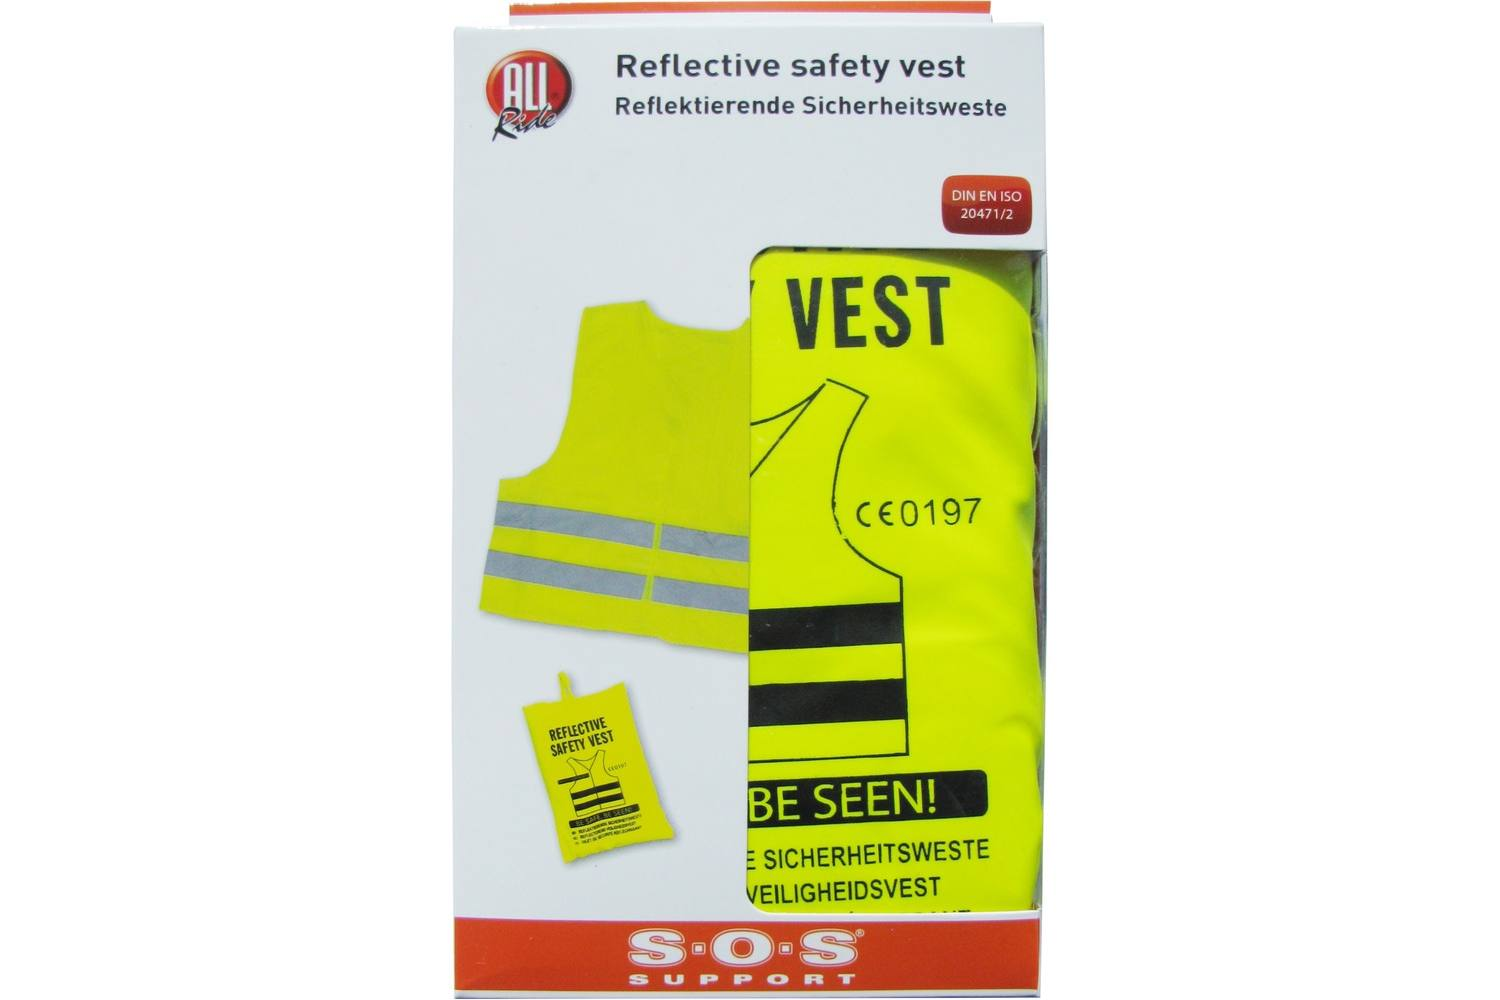 Reflective safety vest, AllRide SOS support, yellow, in bag 3